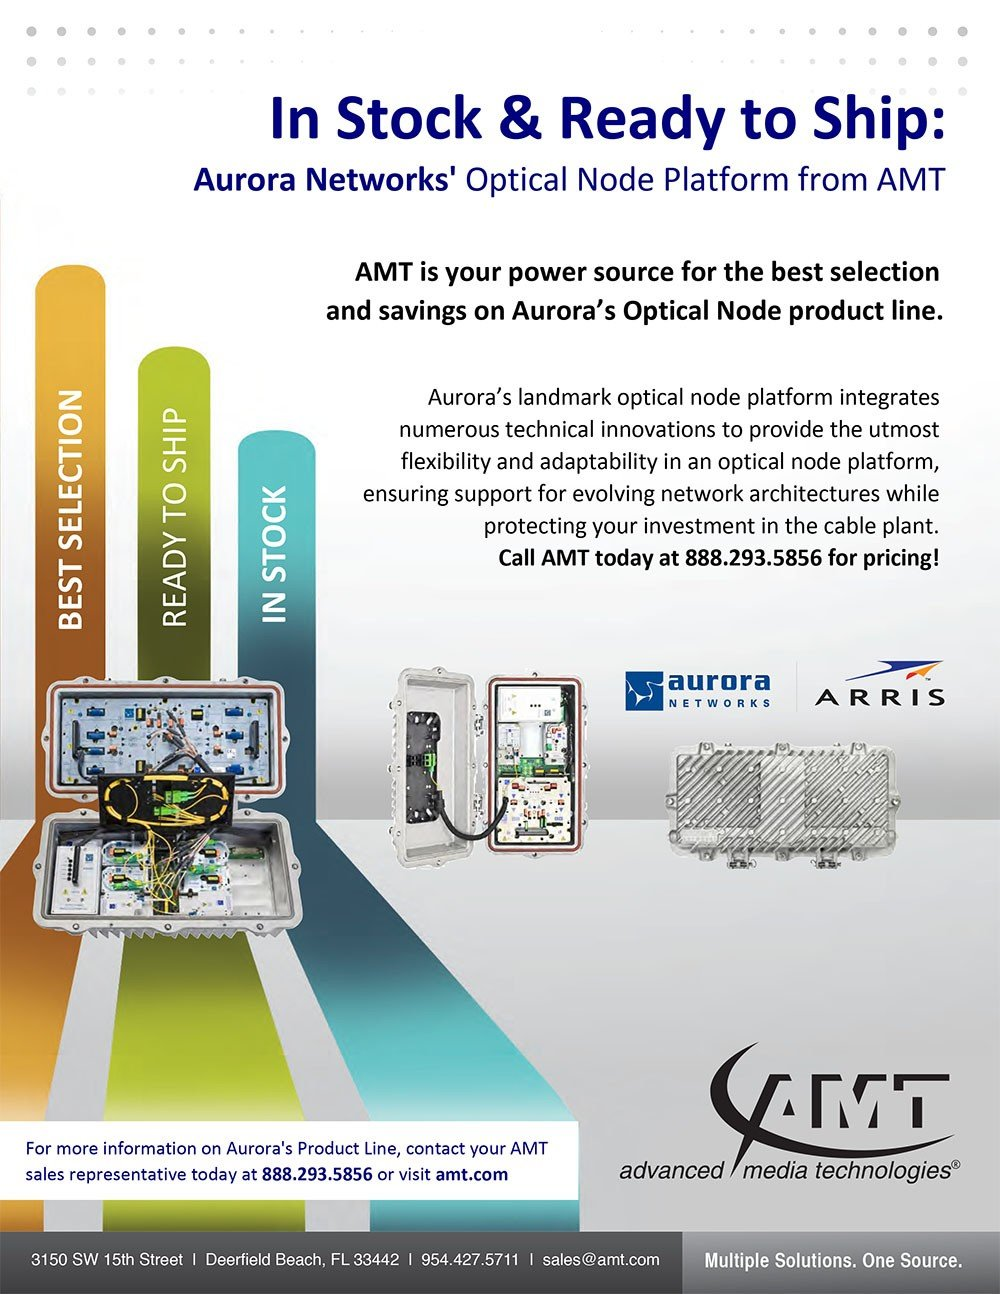 Aurora Networks' Optical Node Platform from AMT